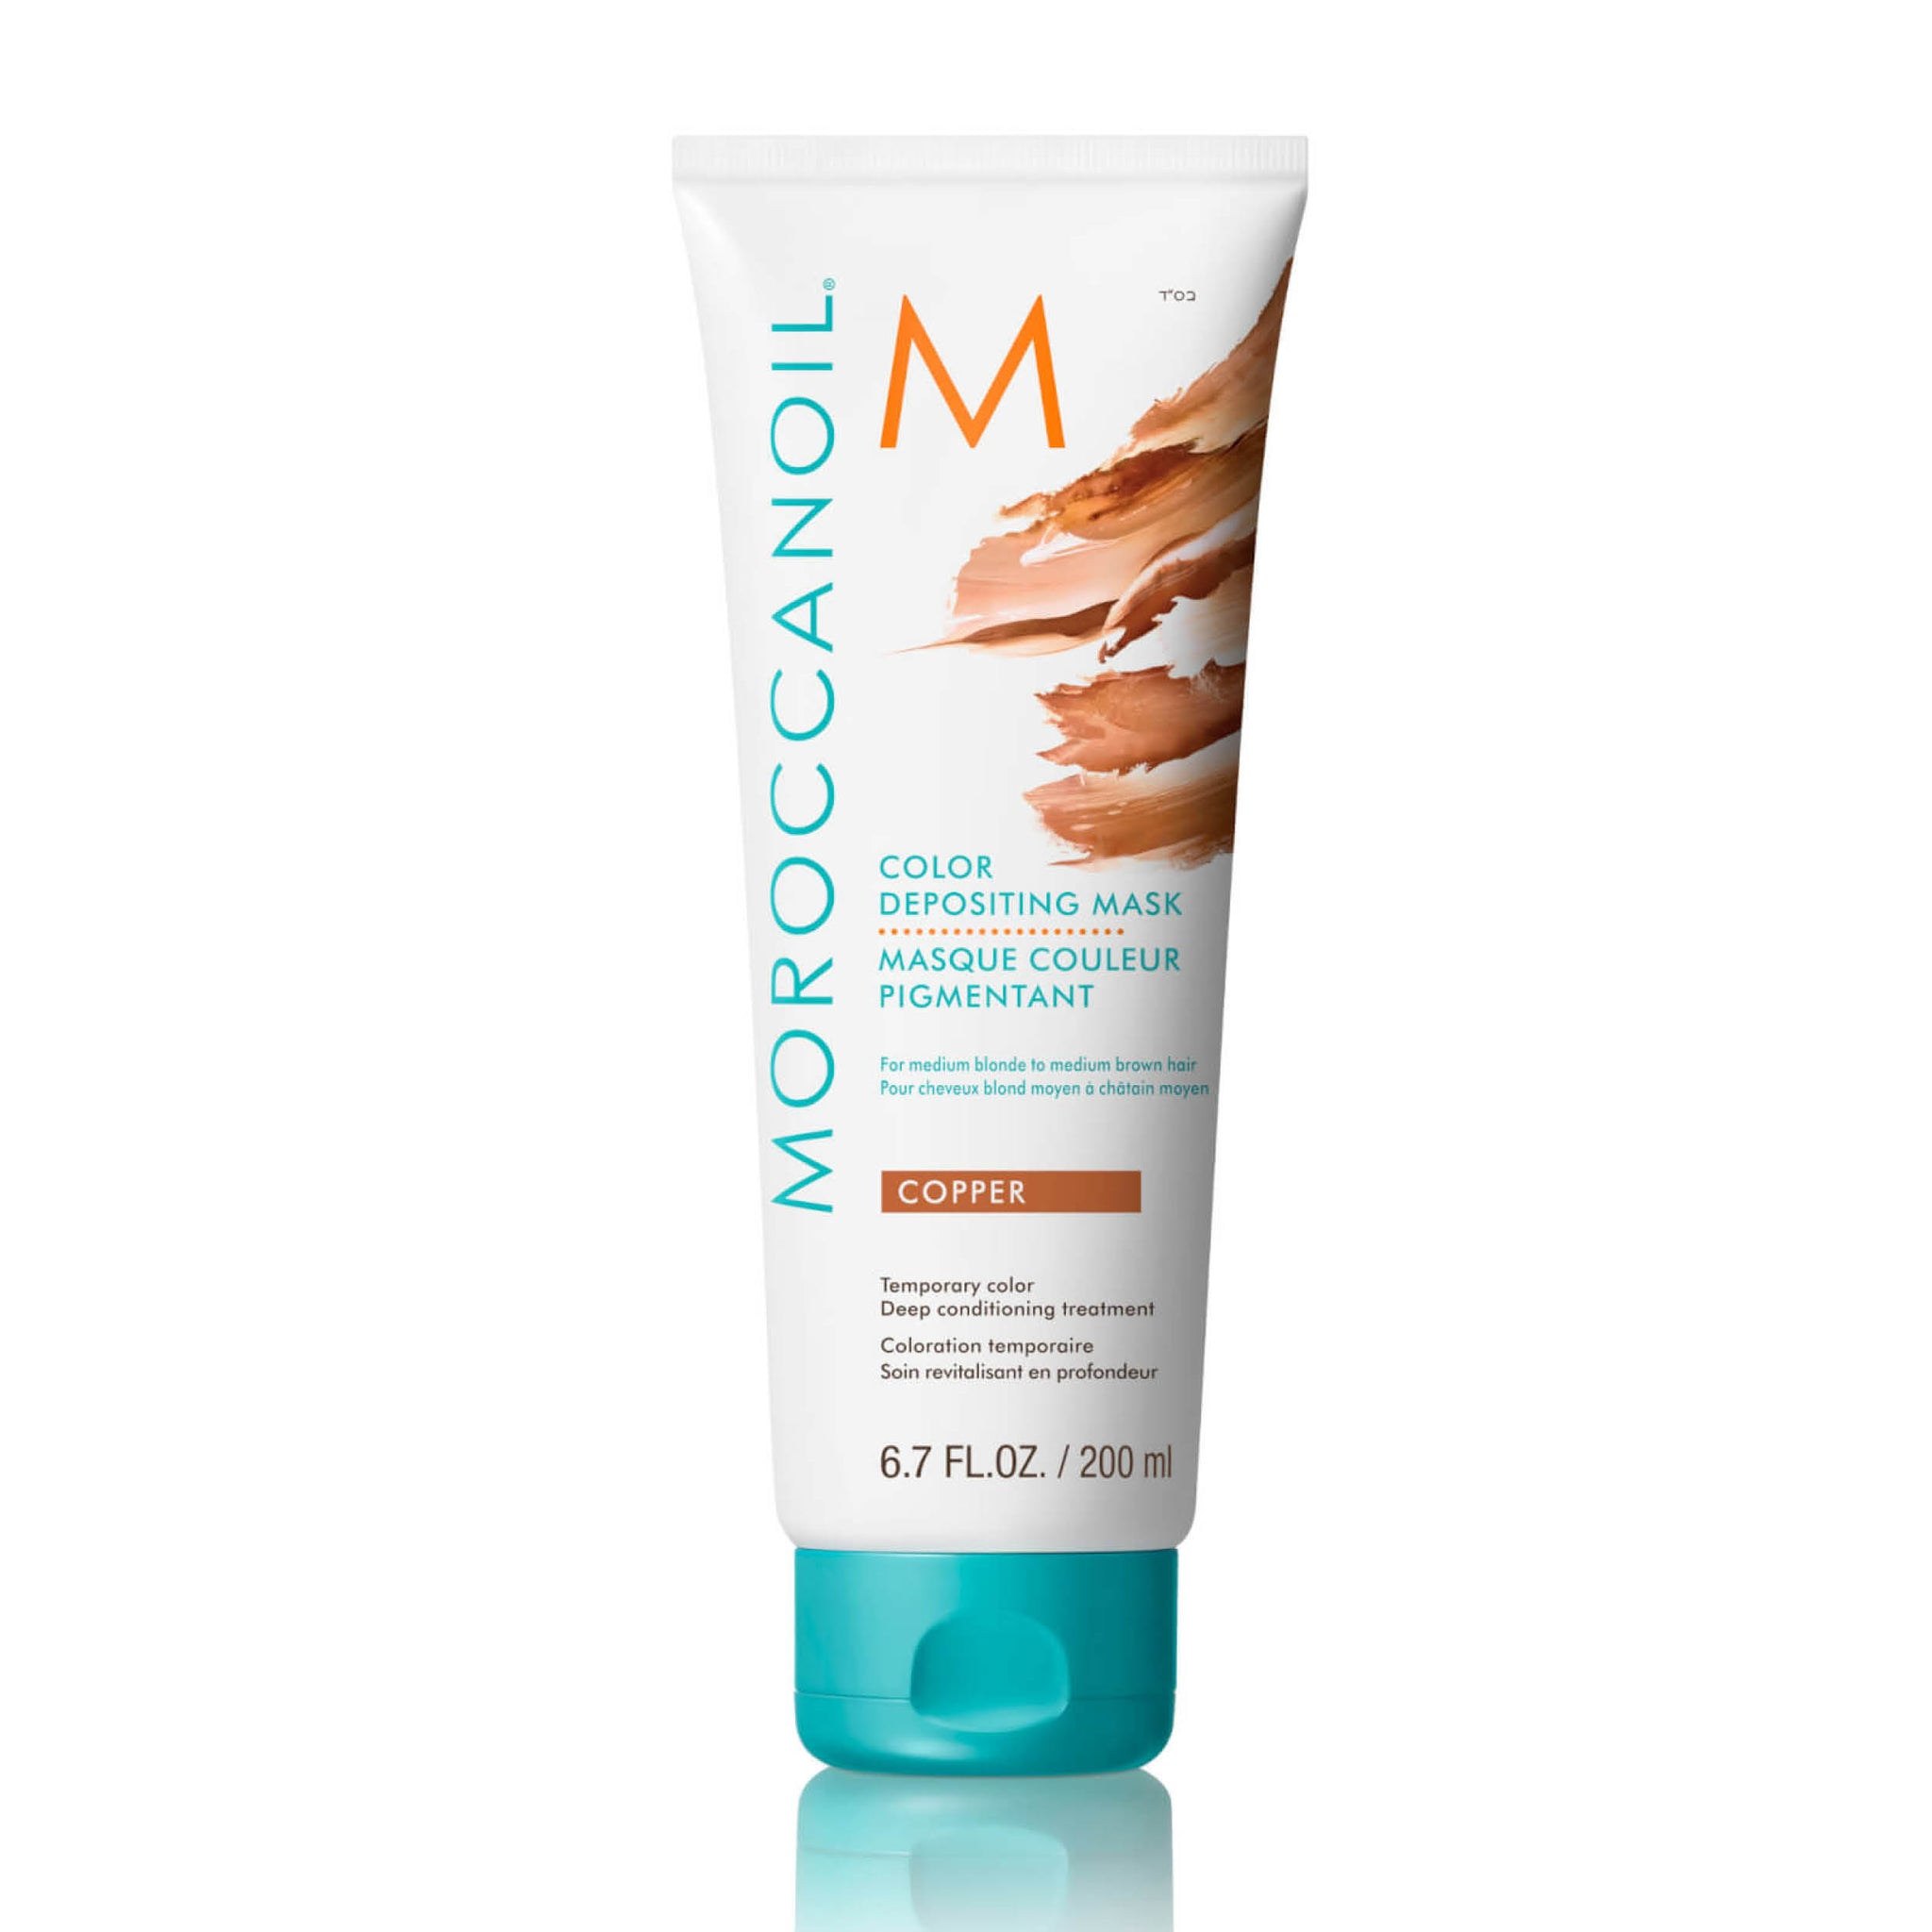 Moroccanoil Color Depositing Mask in Copper